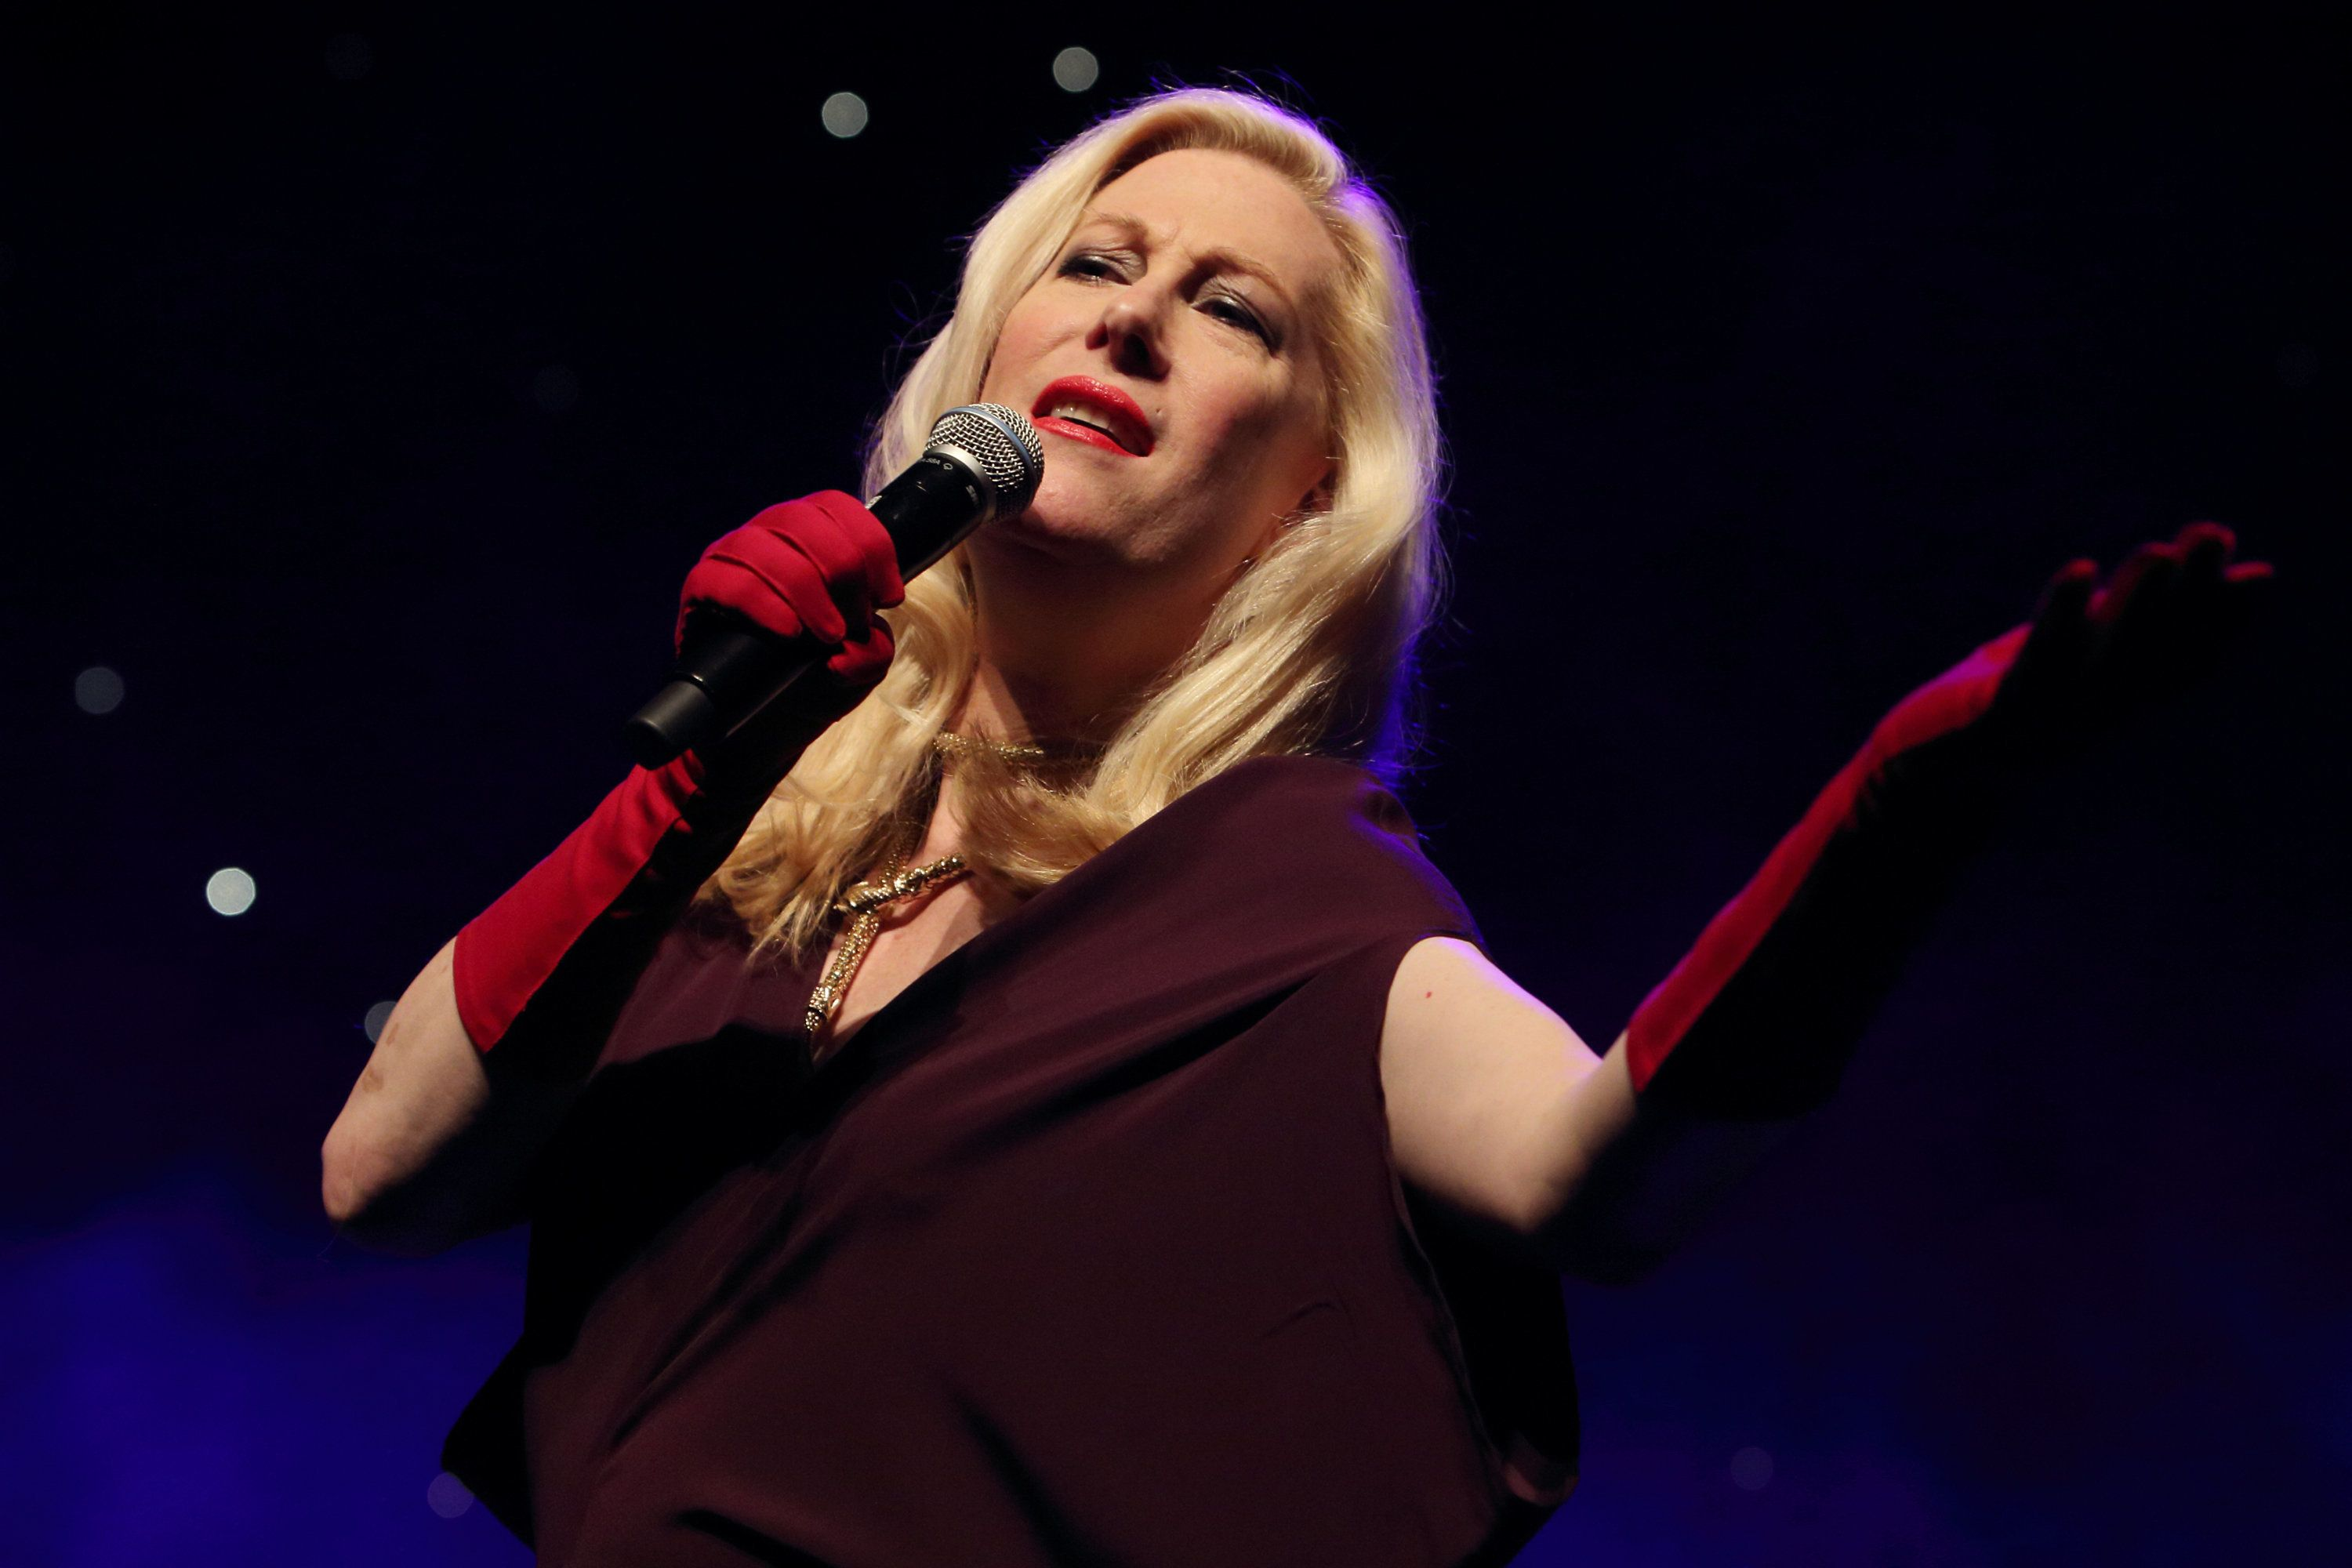 Justin Vivian Bond performs at Queen Elizabeth Hall in London on Feb. 17, 2015.